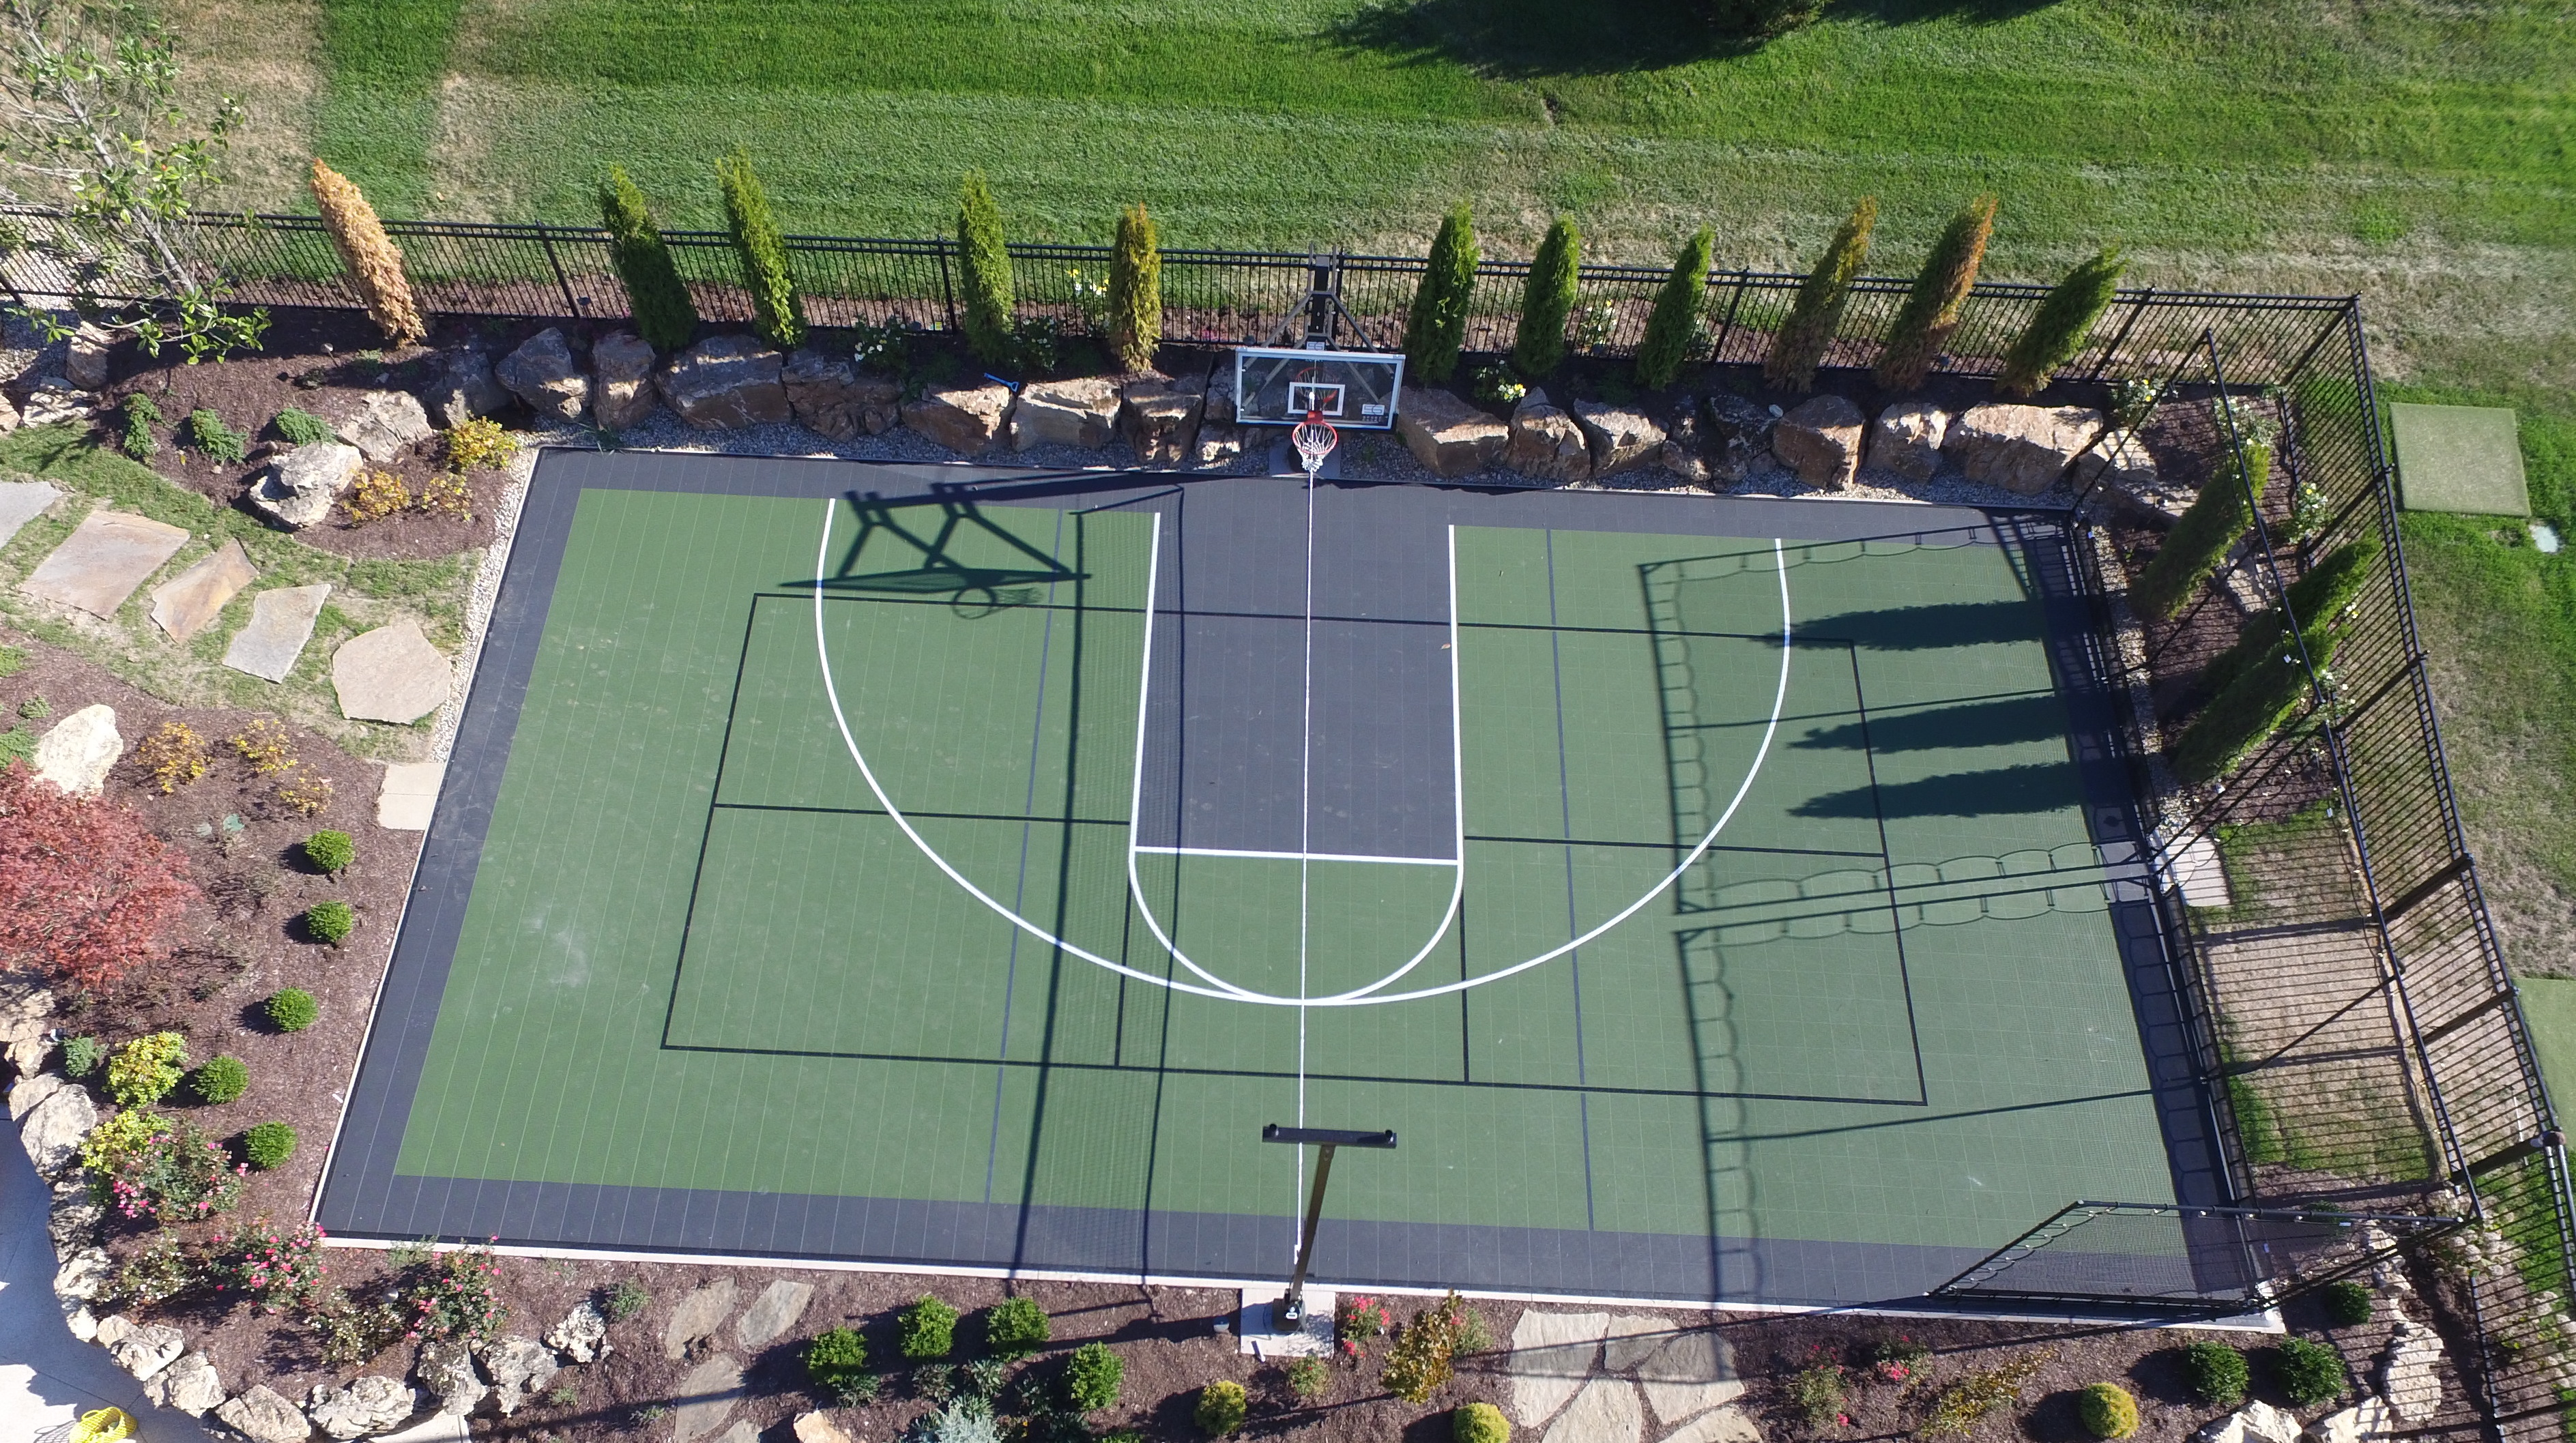 Why choose a sport court backyard game court instead of a for Backyard sport court